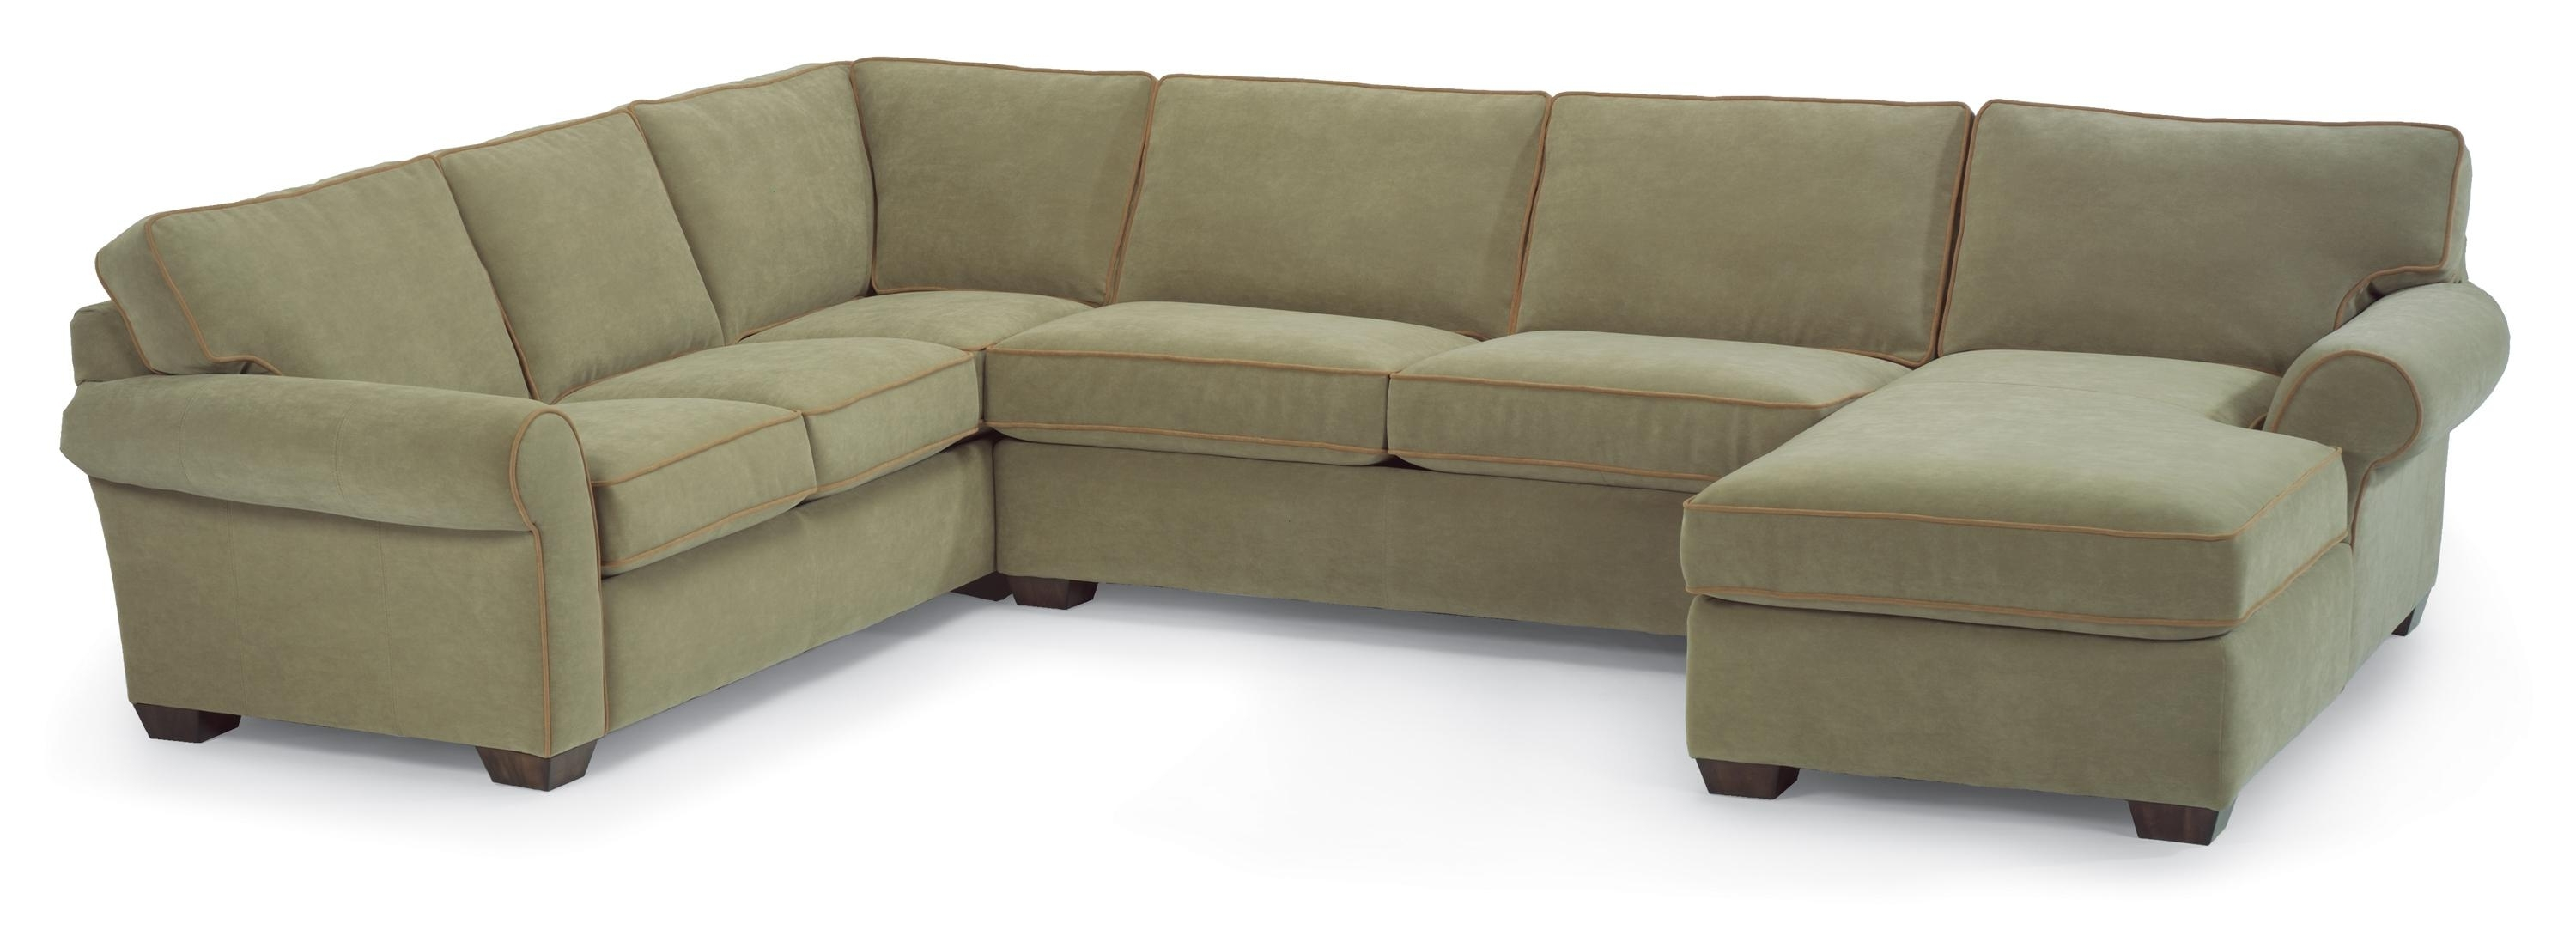 New Regarding Durham Region Sectional Sofas (View 13 of 20)